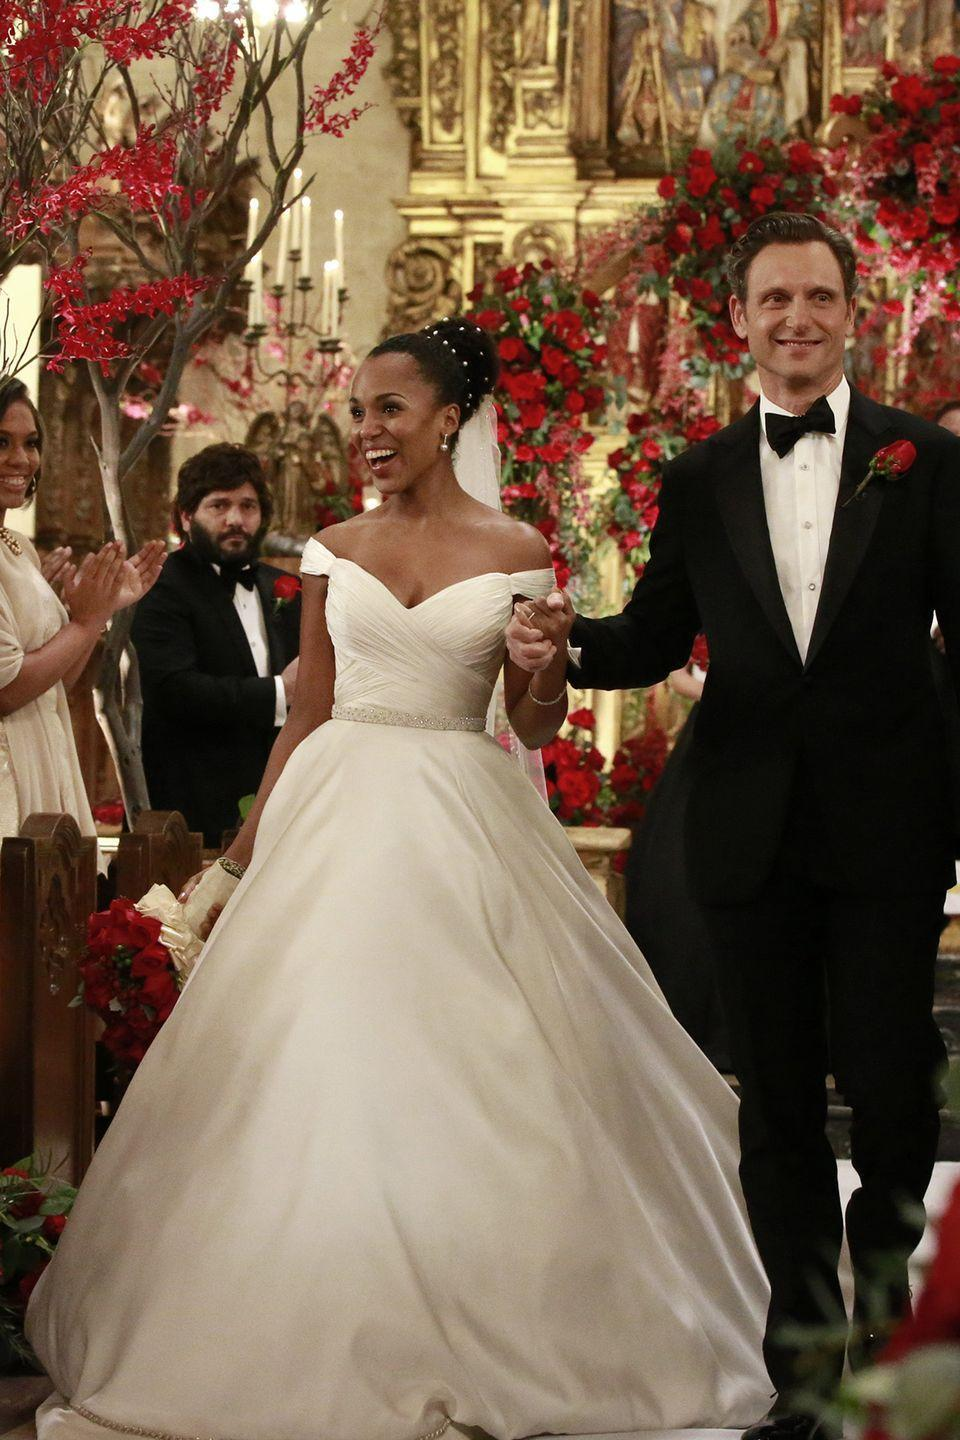 """<p>For those Fitz fans out there in the <em>Scandal</em> universe, this was probably a heartbreaking scene. This wedding sequence from season 6 aired as a """"what if"""" moment in which audiences saw what his marriage to Olivia could have looked like. In it, Olivia wore a shoulder-baring gown with a dramatic silk skirt, and her hair pulled back in an elegant rhinestone-embellished bun. </p>"""